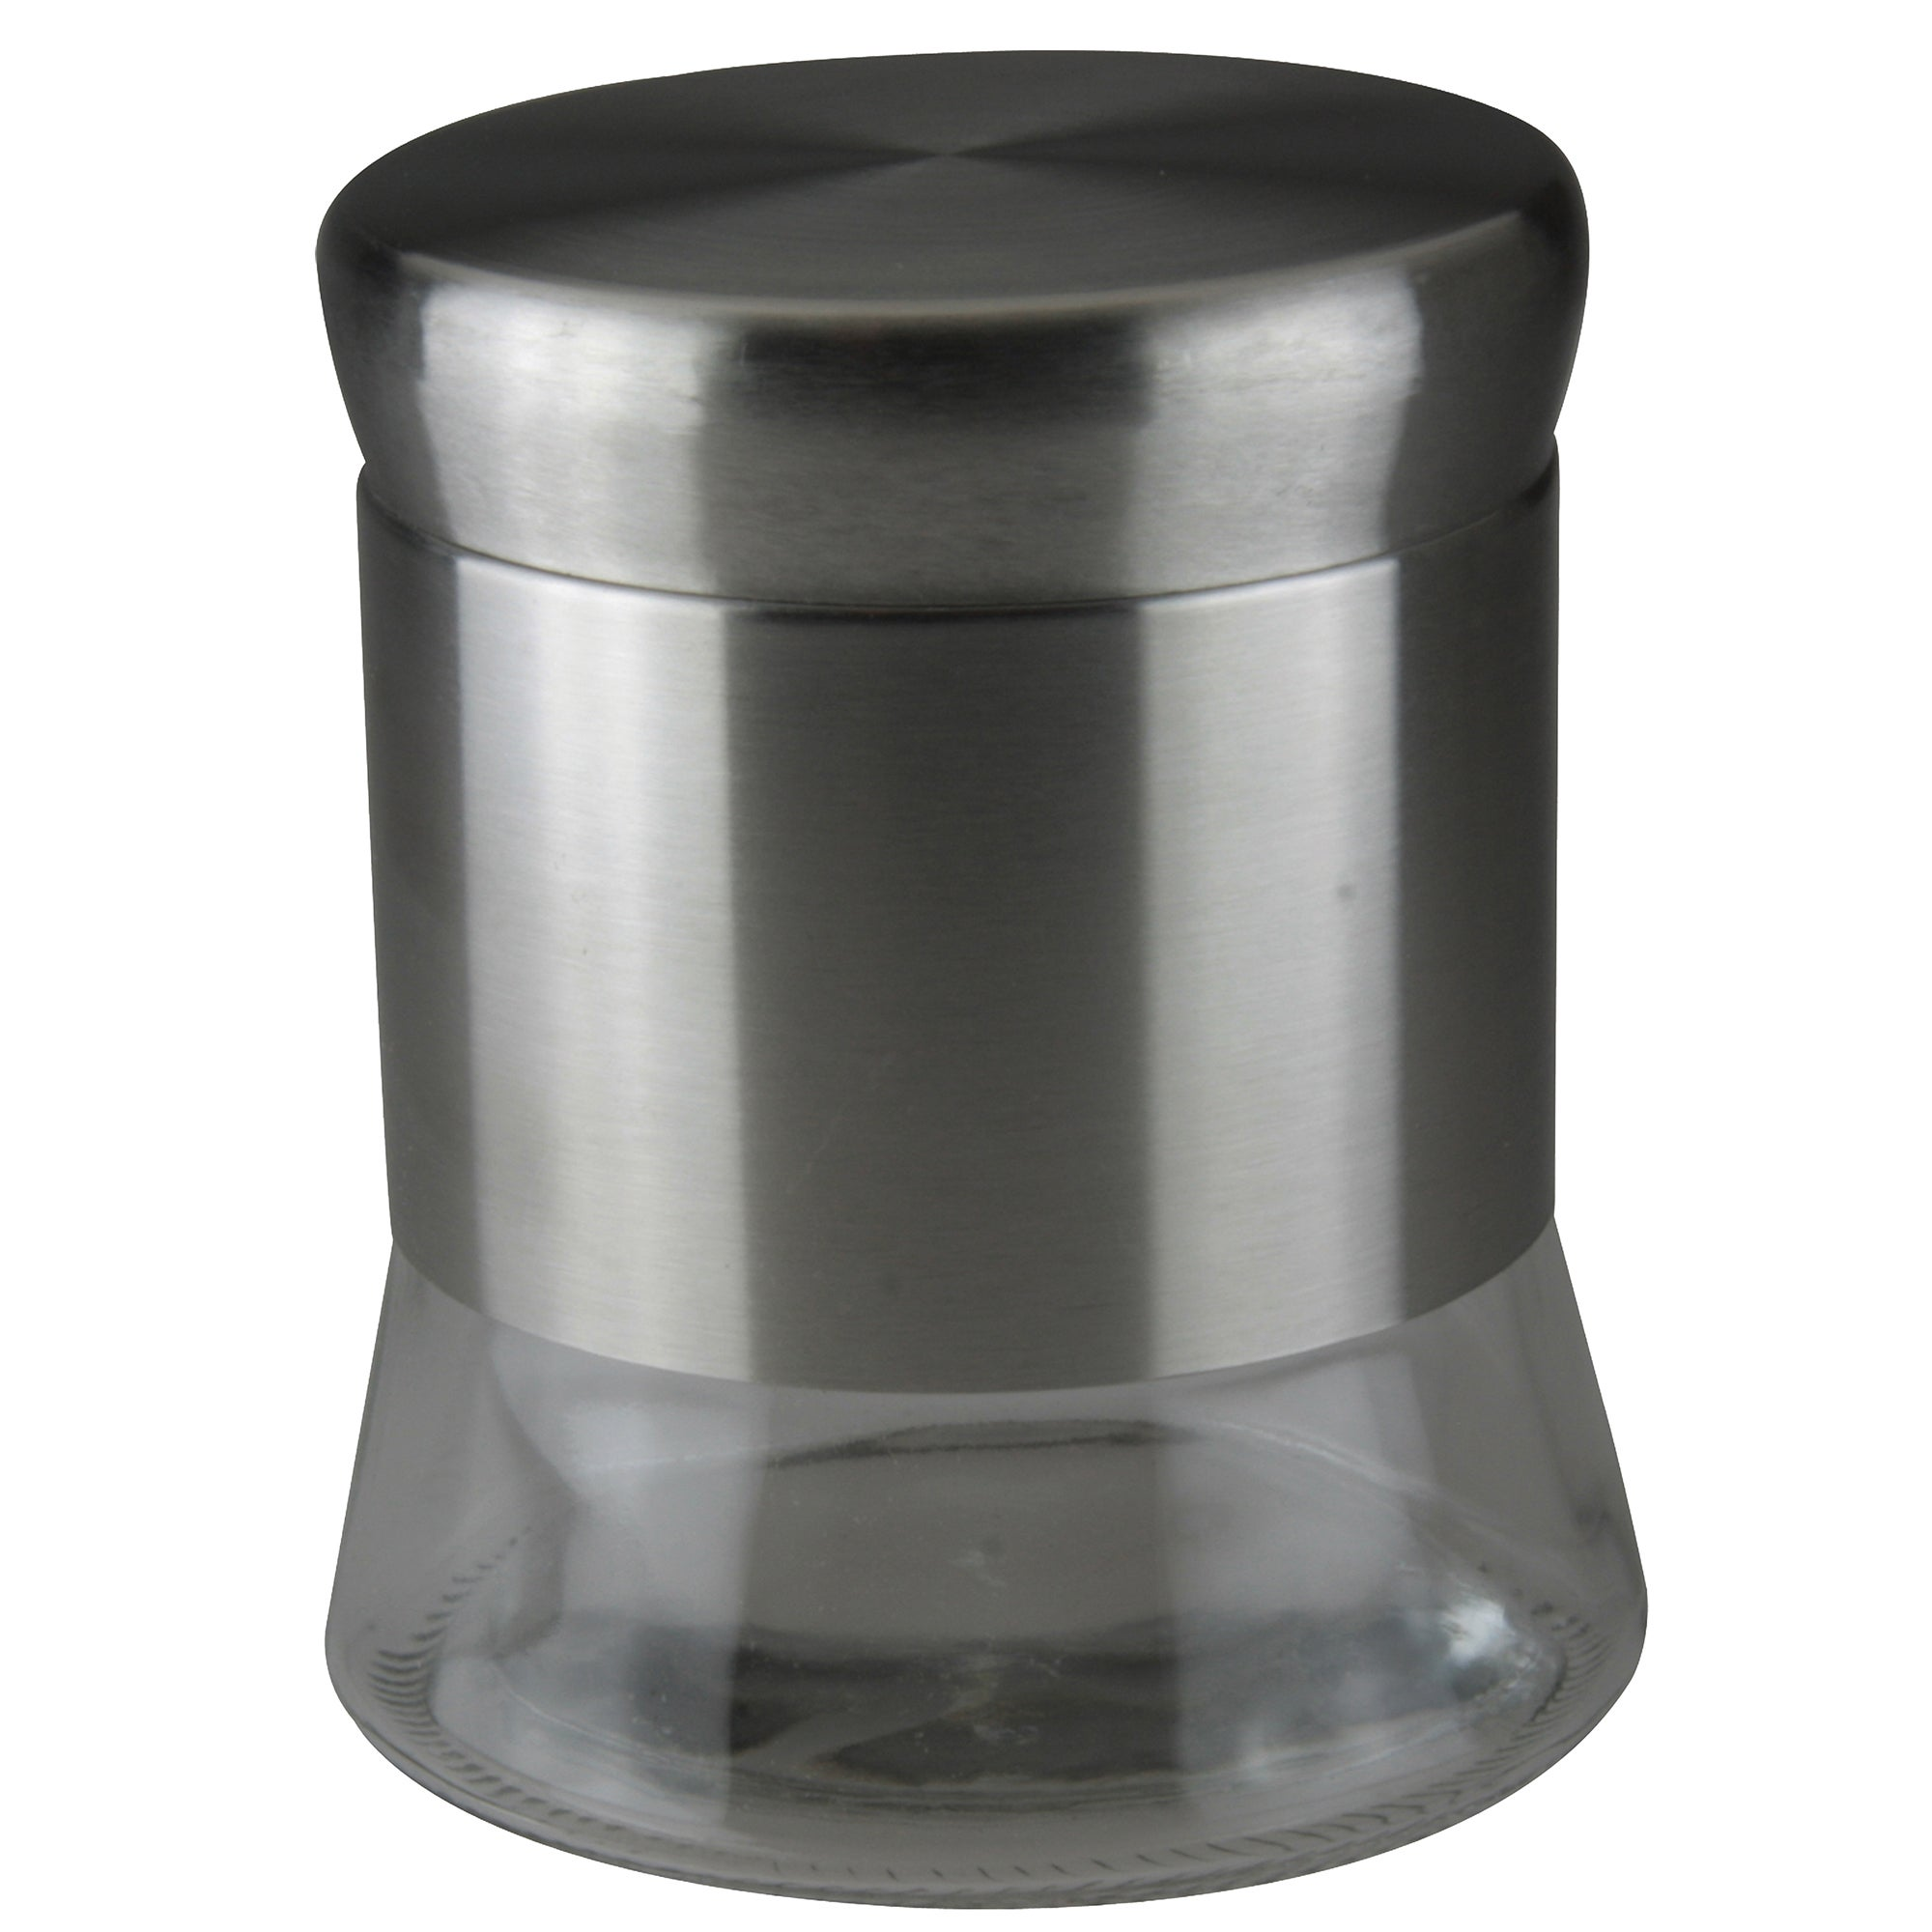 Glass Canister with Stainless Steel Lid